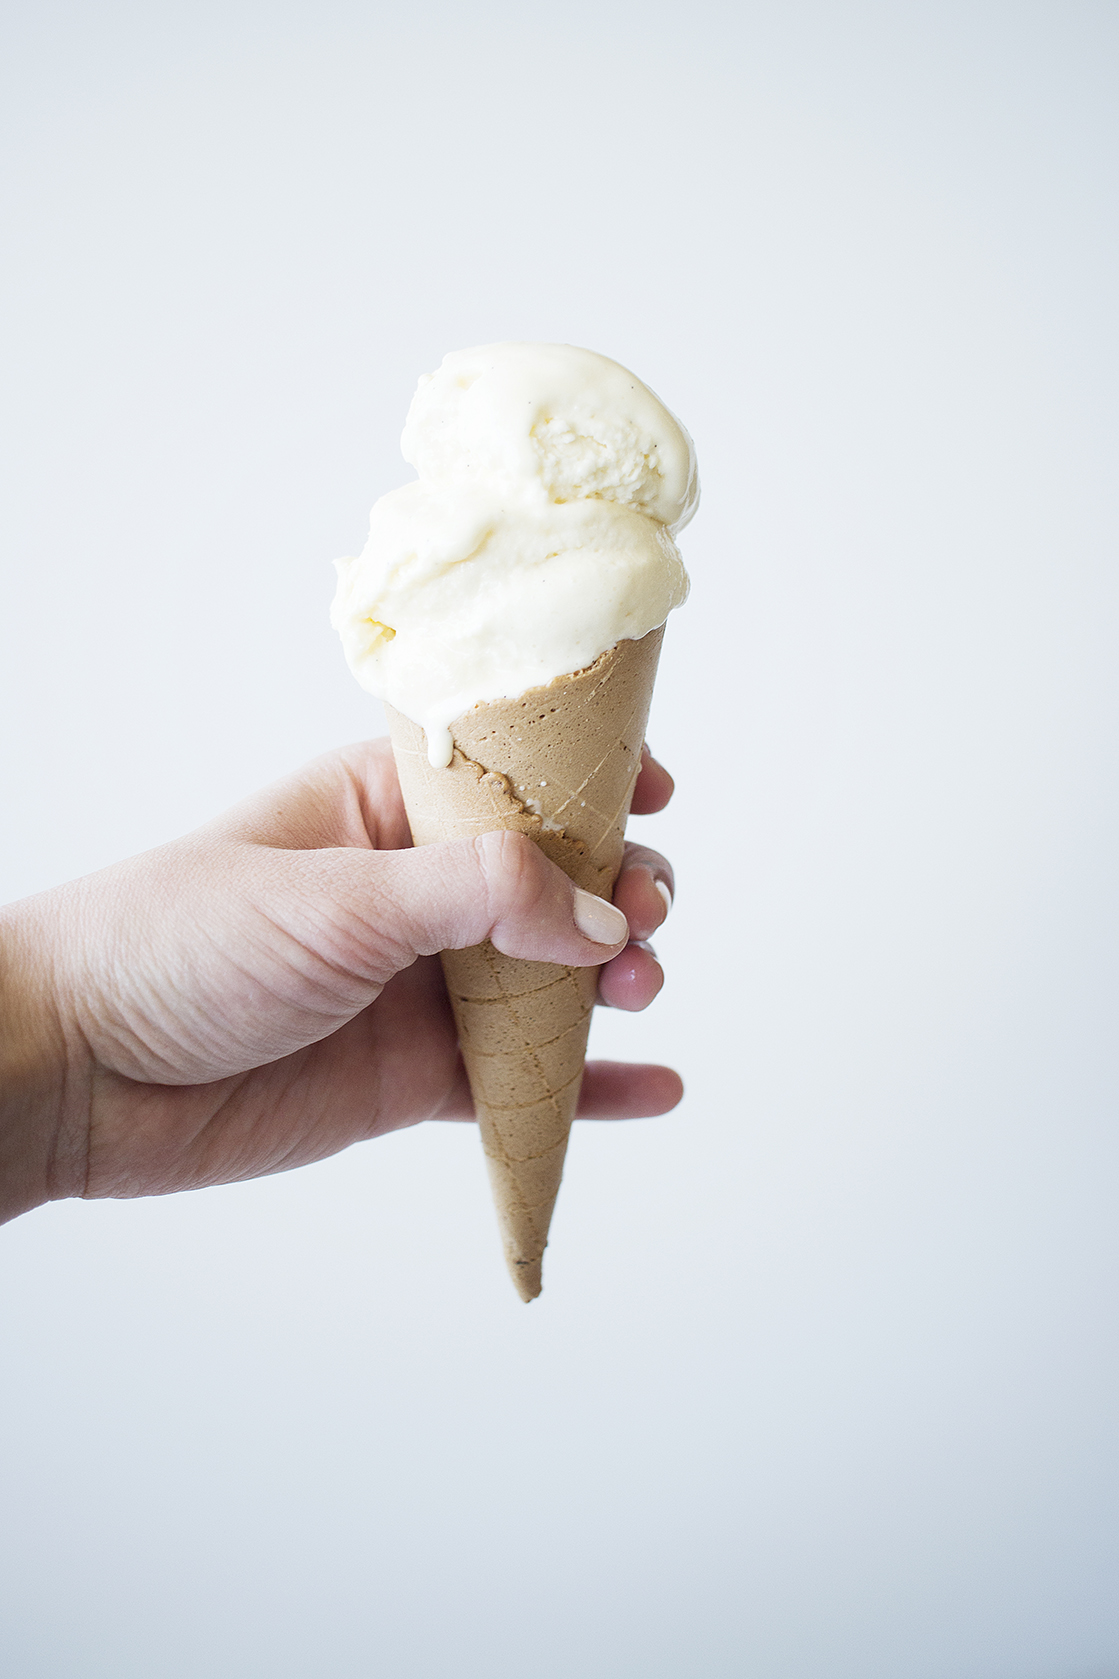 Vanilla Bean Ice Cream (No Ice Cream Machine)